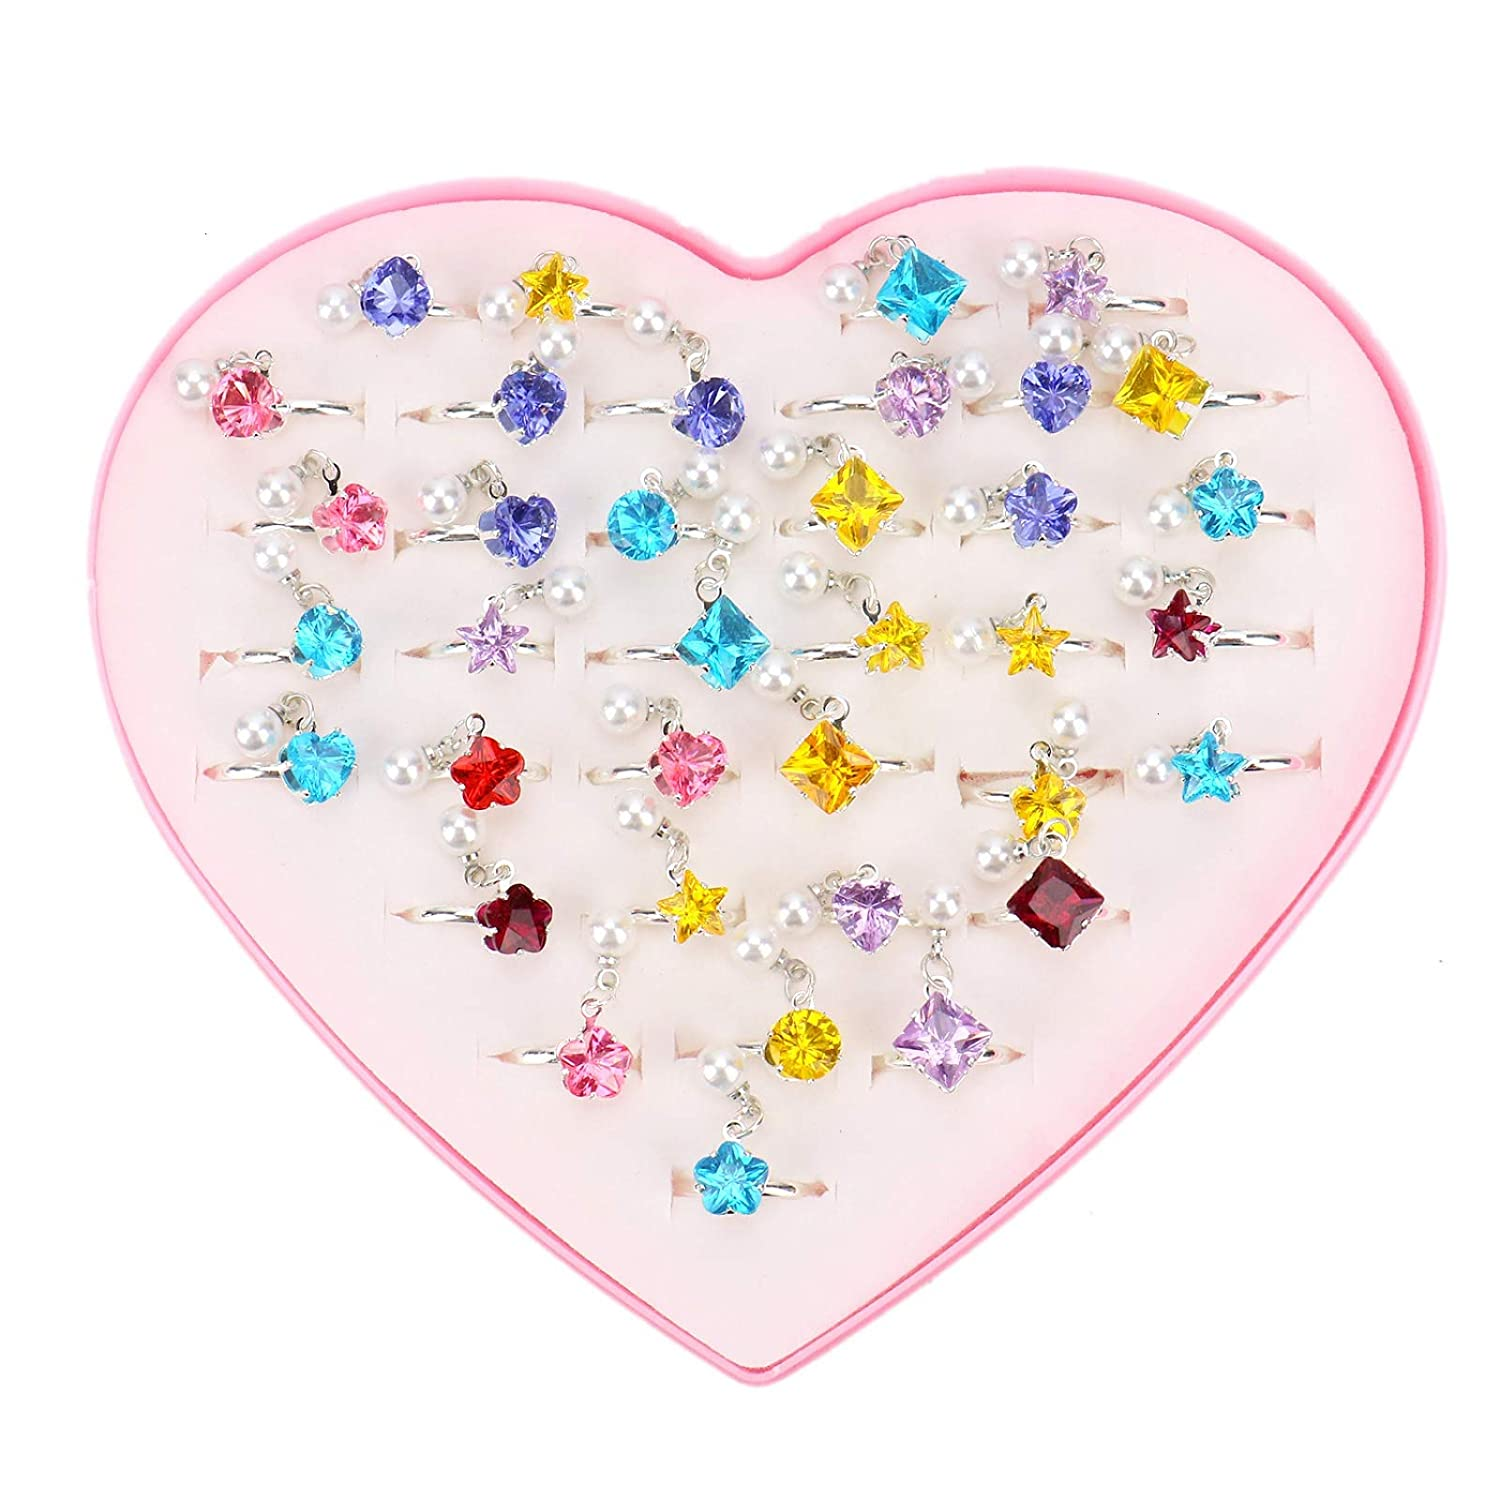 WSSROGY 36Pcs Adjustable Jewelry Rings in Heart Shaped Box for Princess Pretend Play and Dress up Mixed Patterns and Color